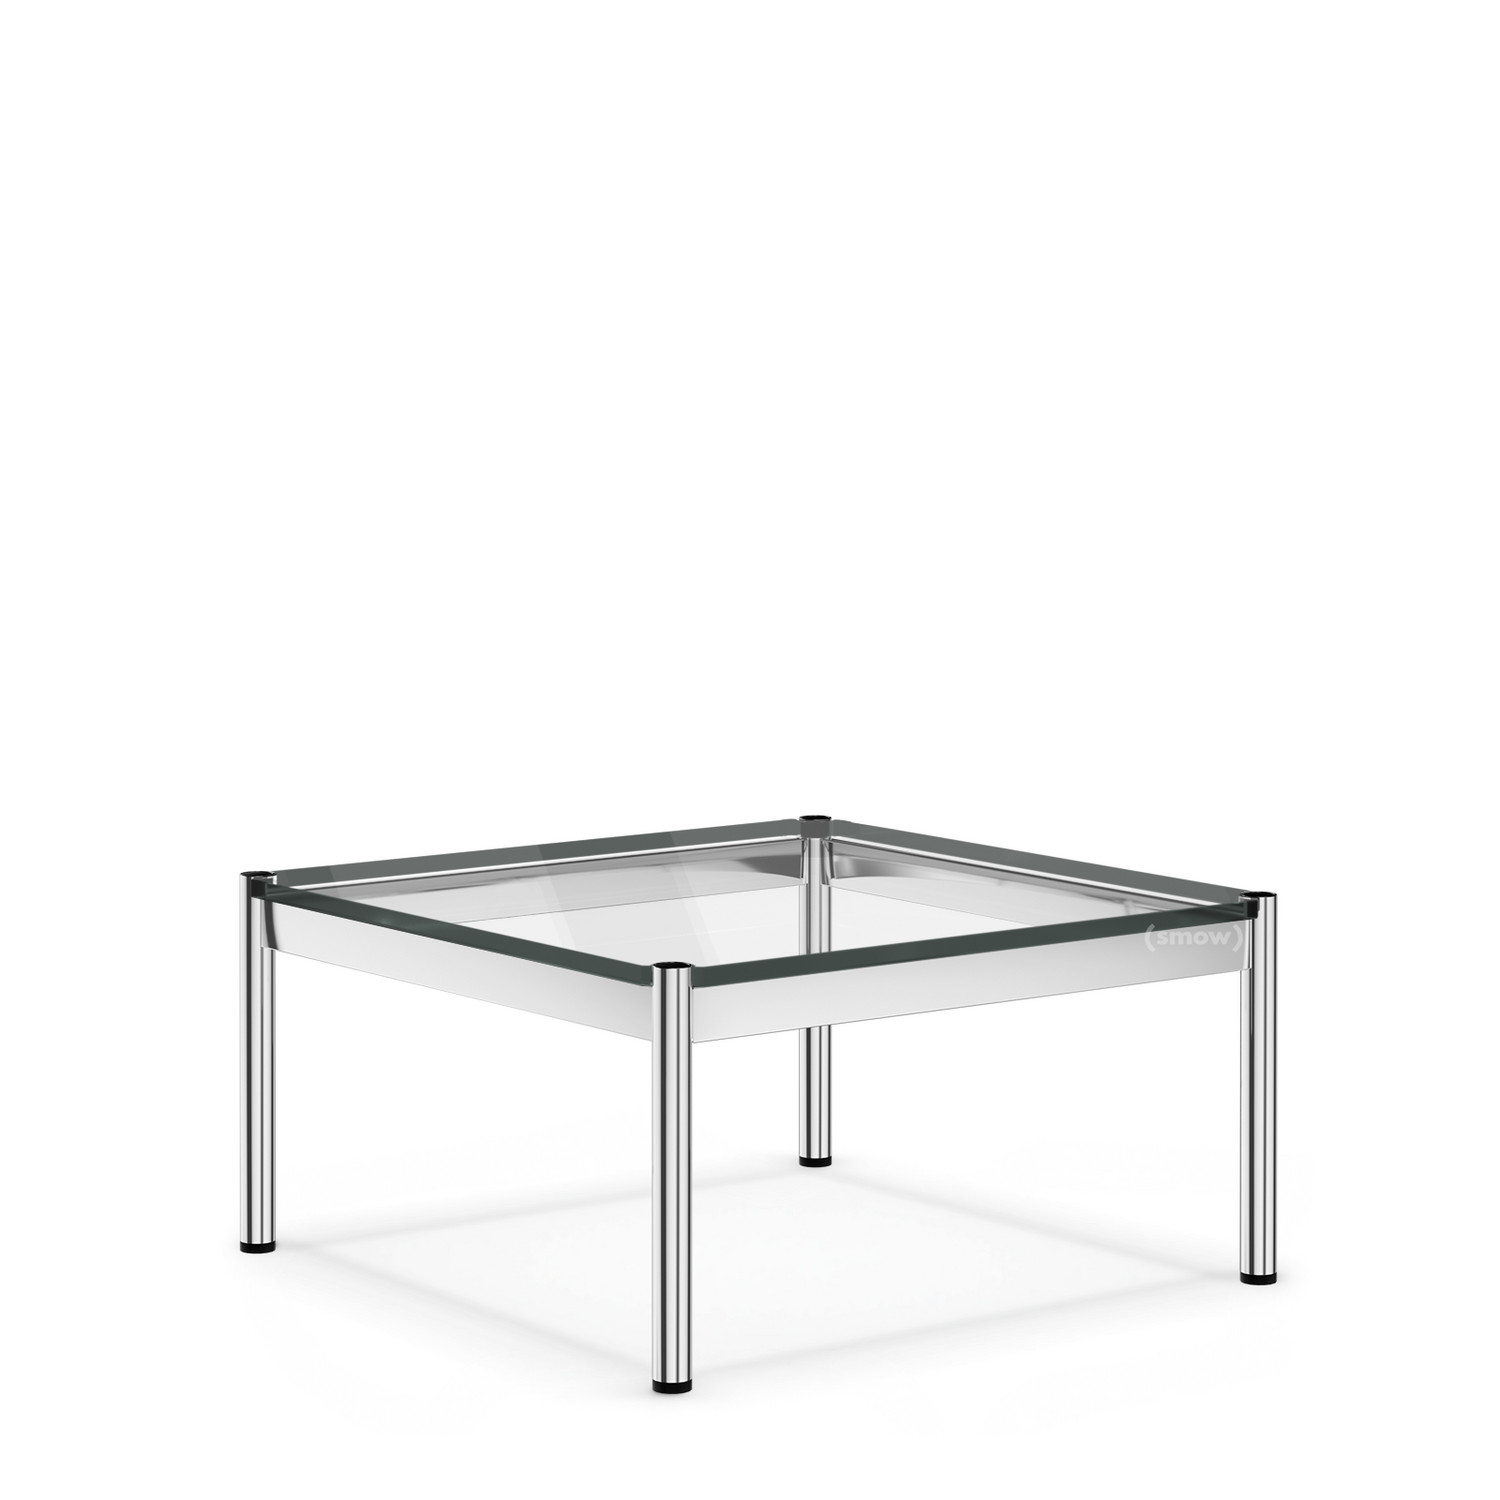 Usm Haller Couchtisch Usm Haller Coffee Table 75 X 75 Cm Glass Transparent By Fritz